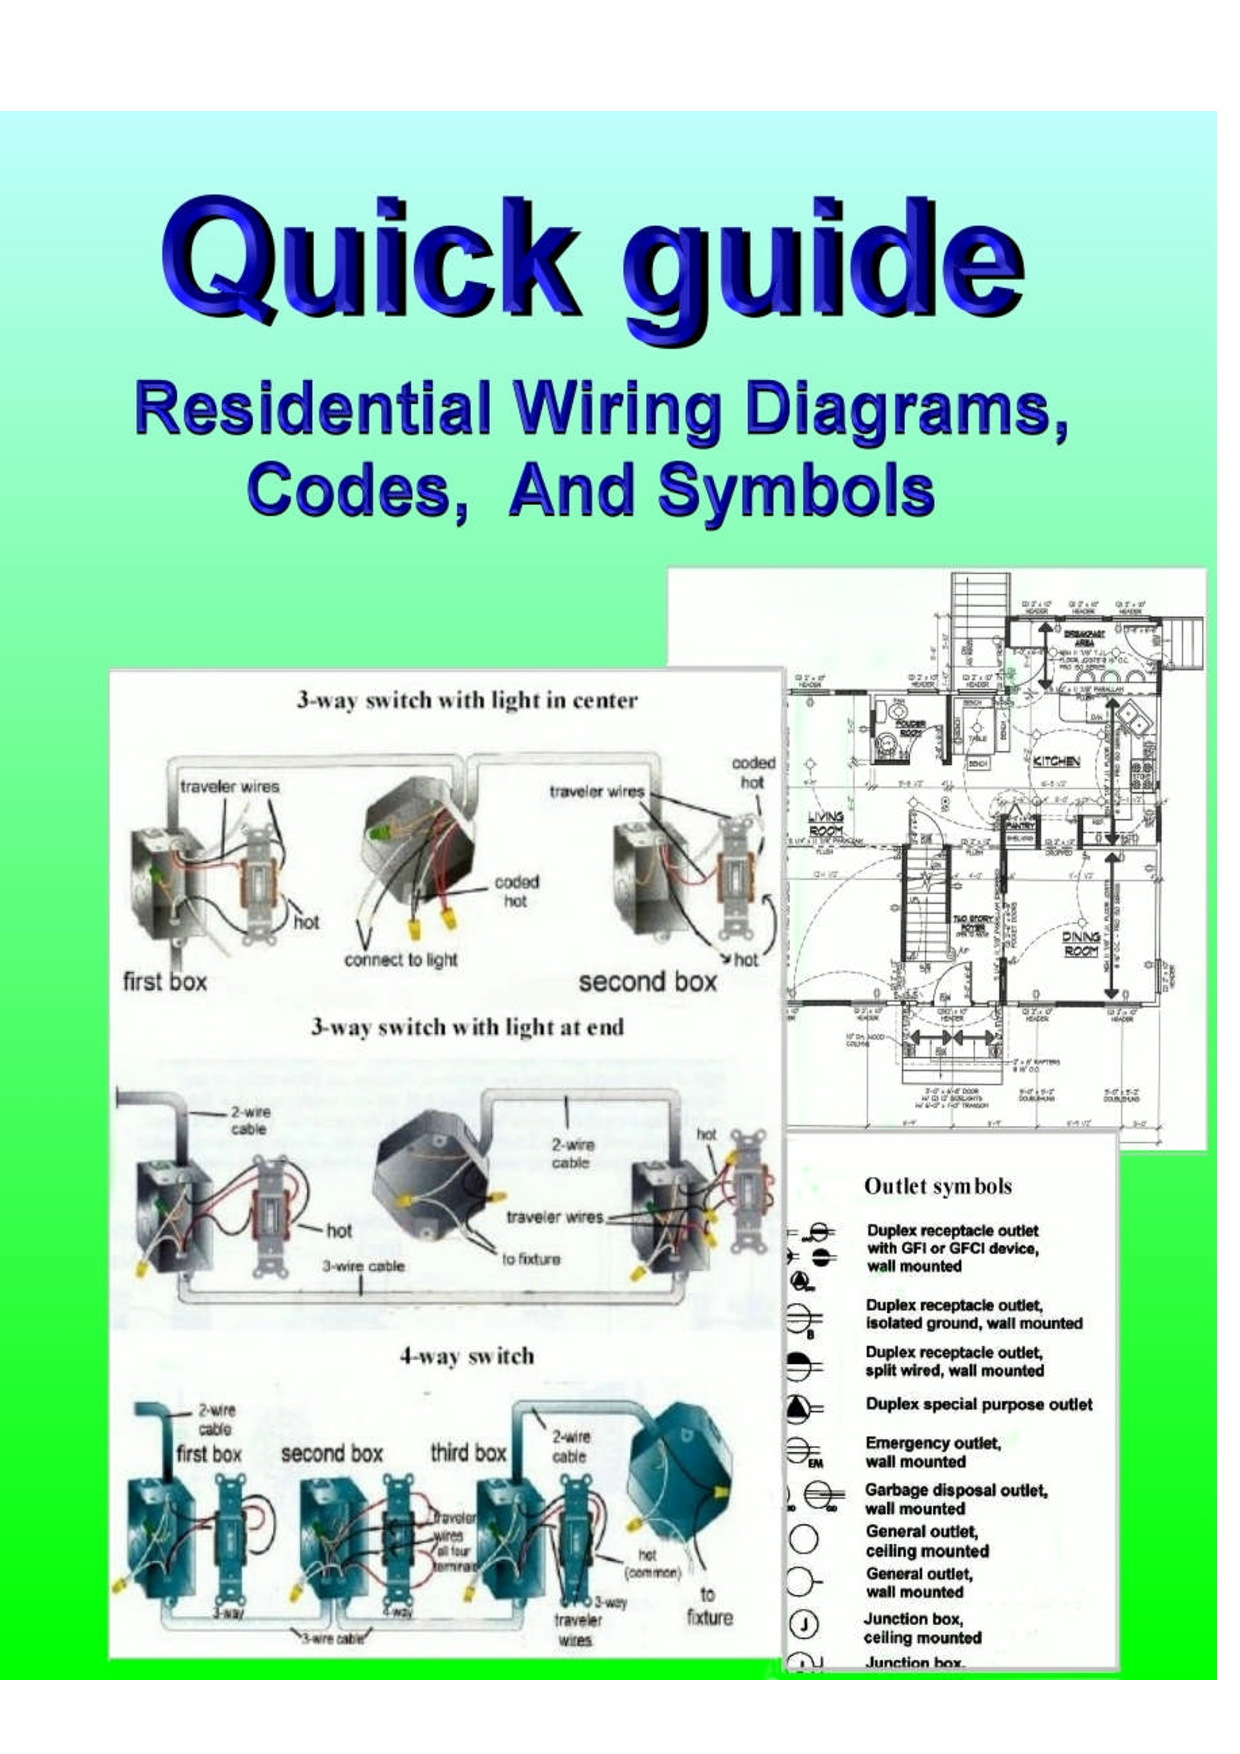 Home Electrical Wiring Diagrams Pdf Legal Doents 39 Pages With Many And Ilrations A Step By Guide